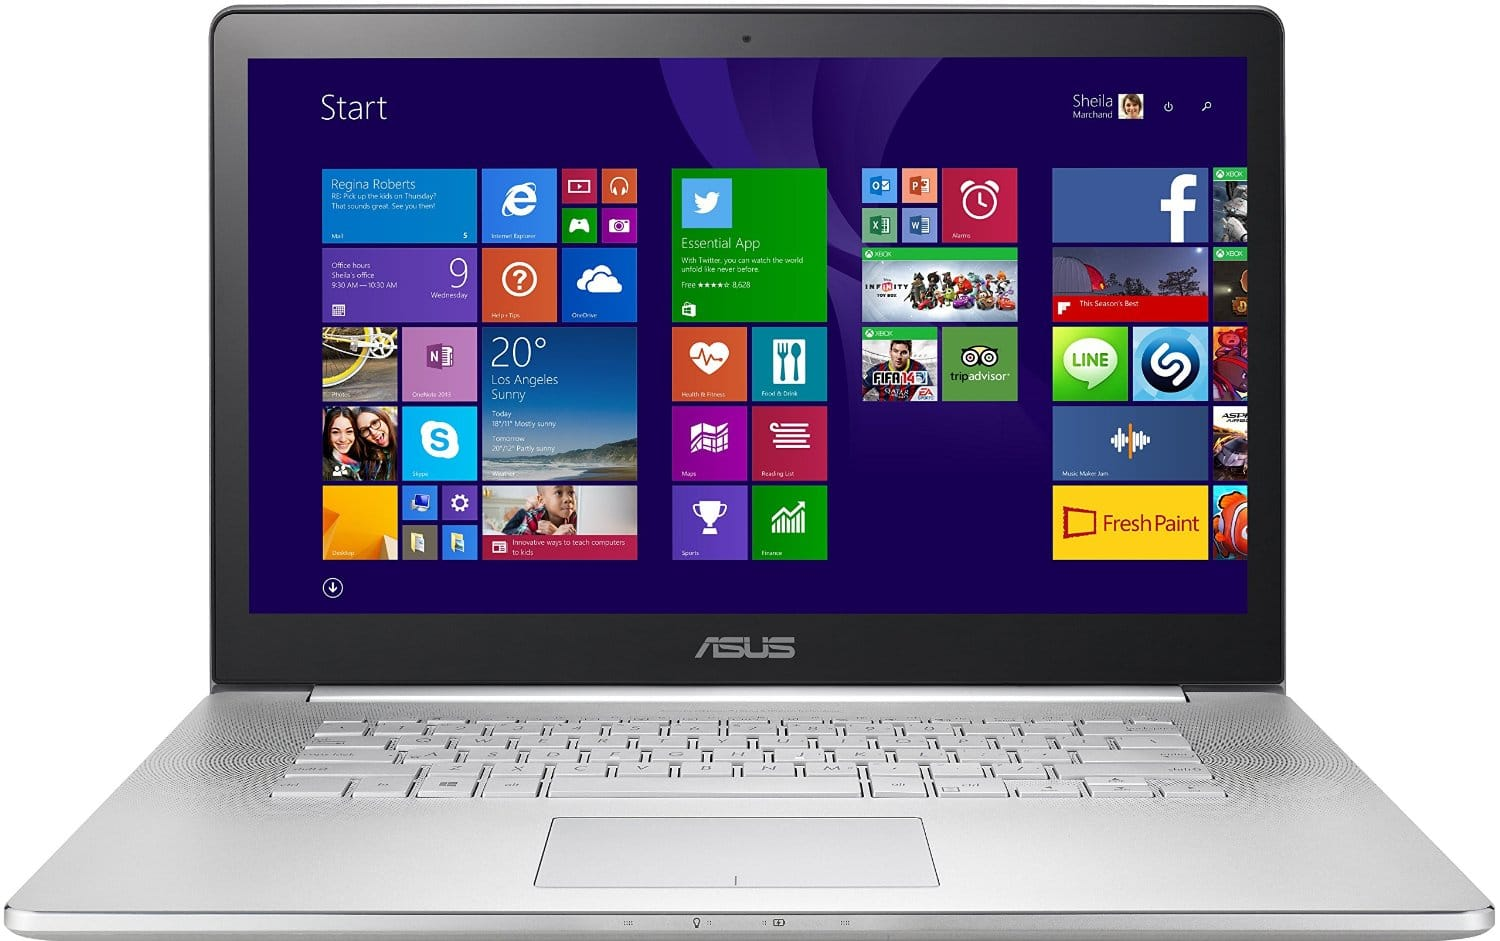 Asus Zenbook 15.6-inch - Best Laptop for Medical Students 2015